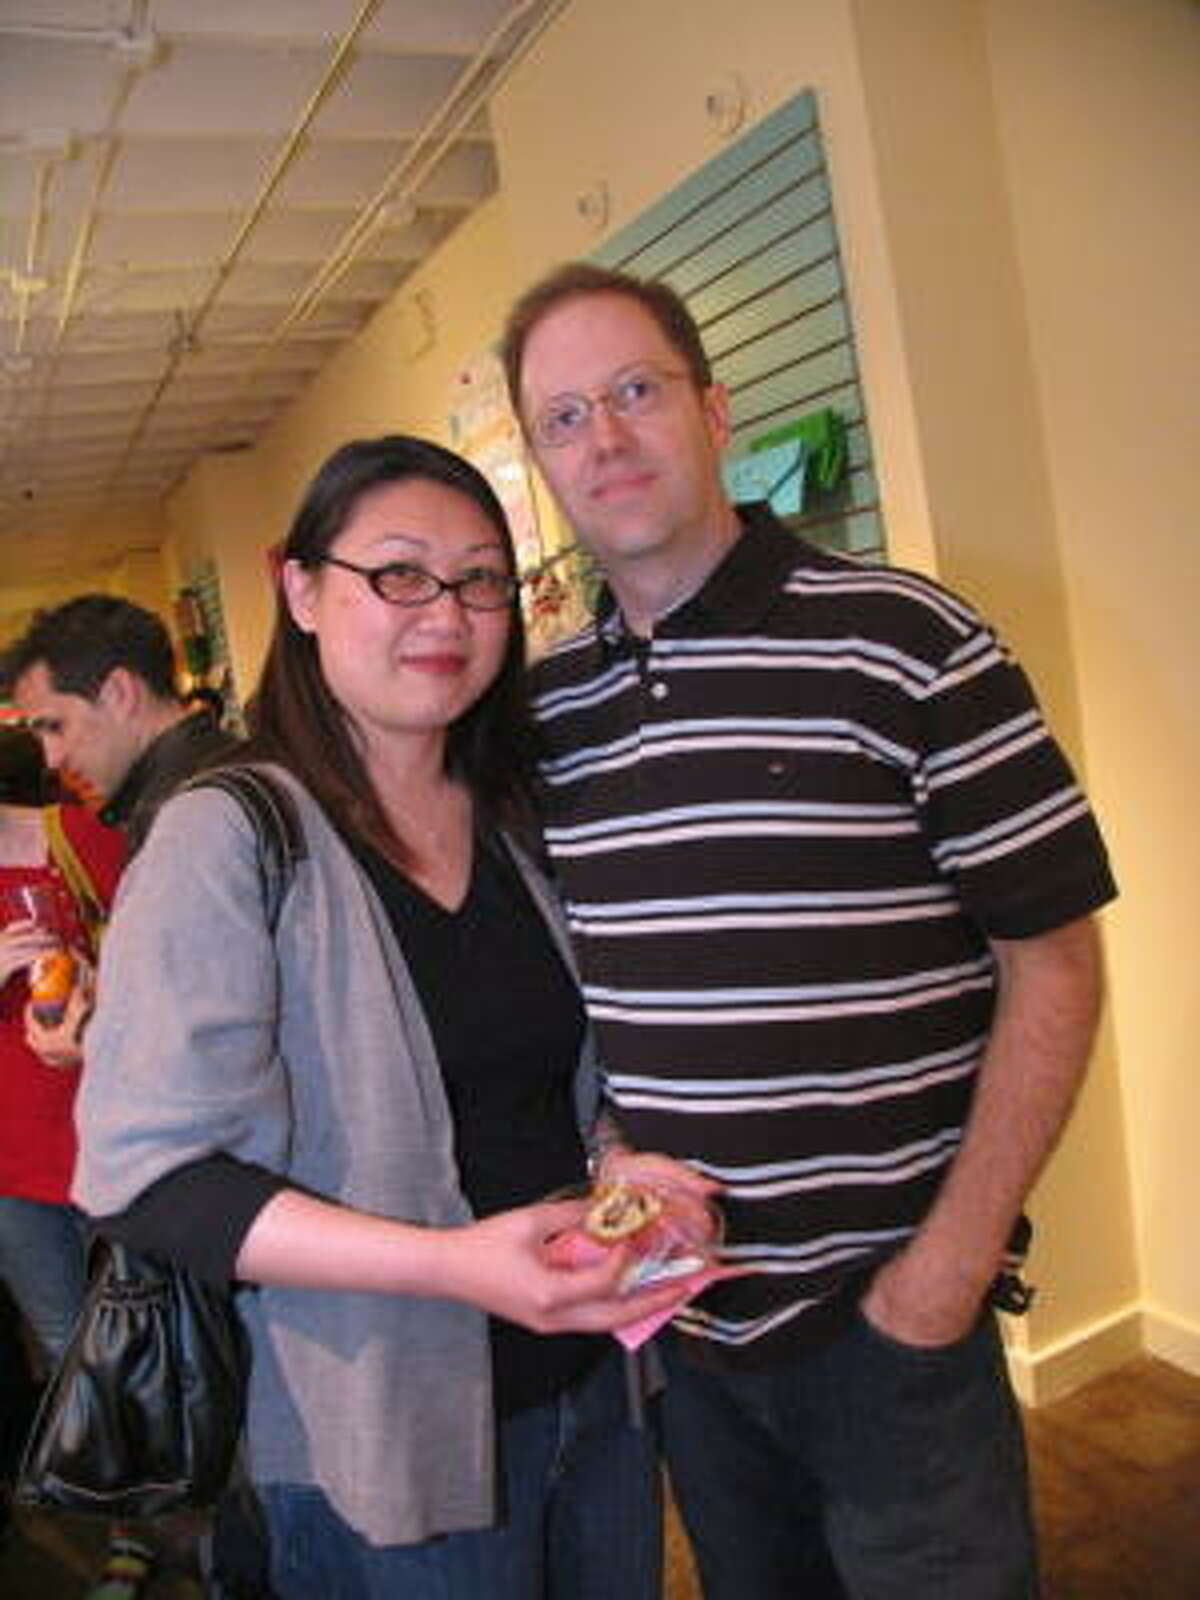 Craft-lovers joined together to celebrate the grand re-opening Sew Crafty, a sewing lounge in the heights. Pictured: Patty and David Holmes